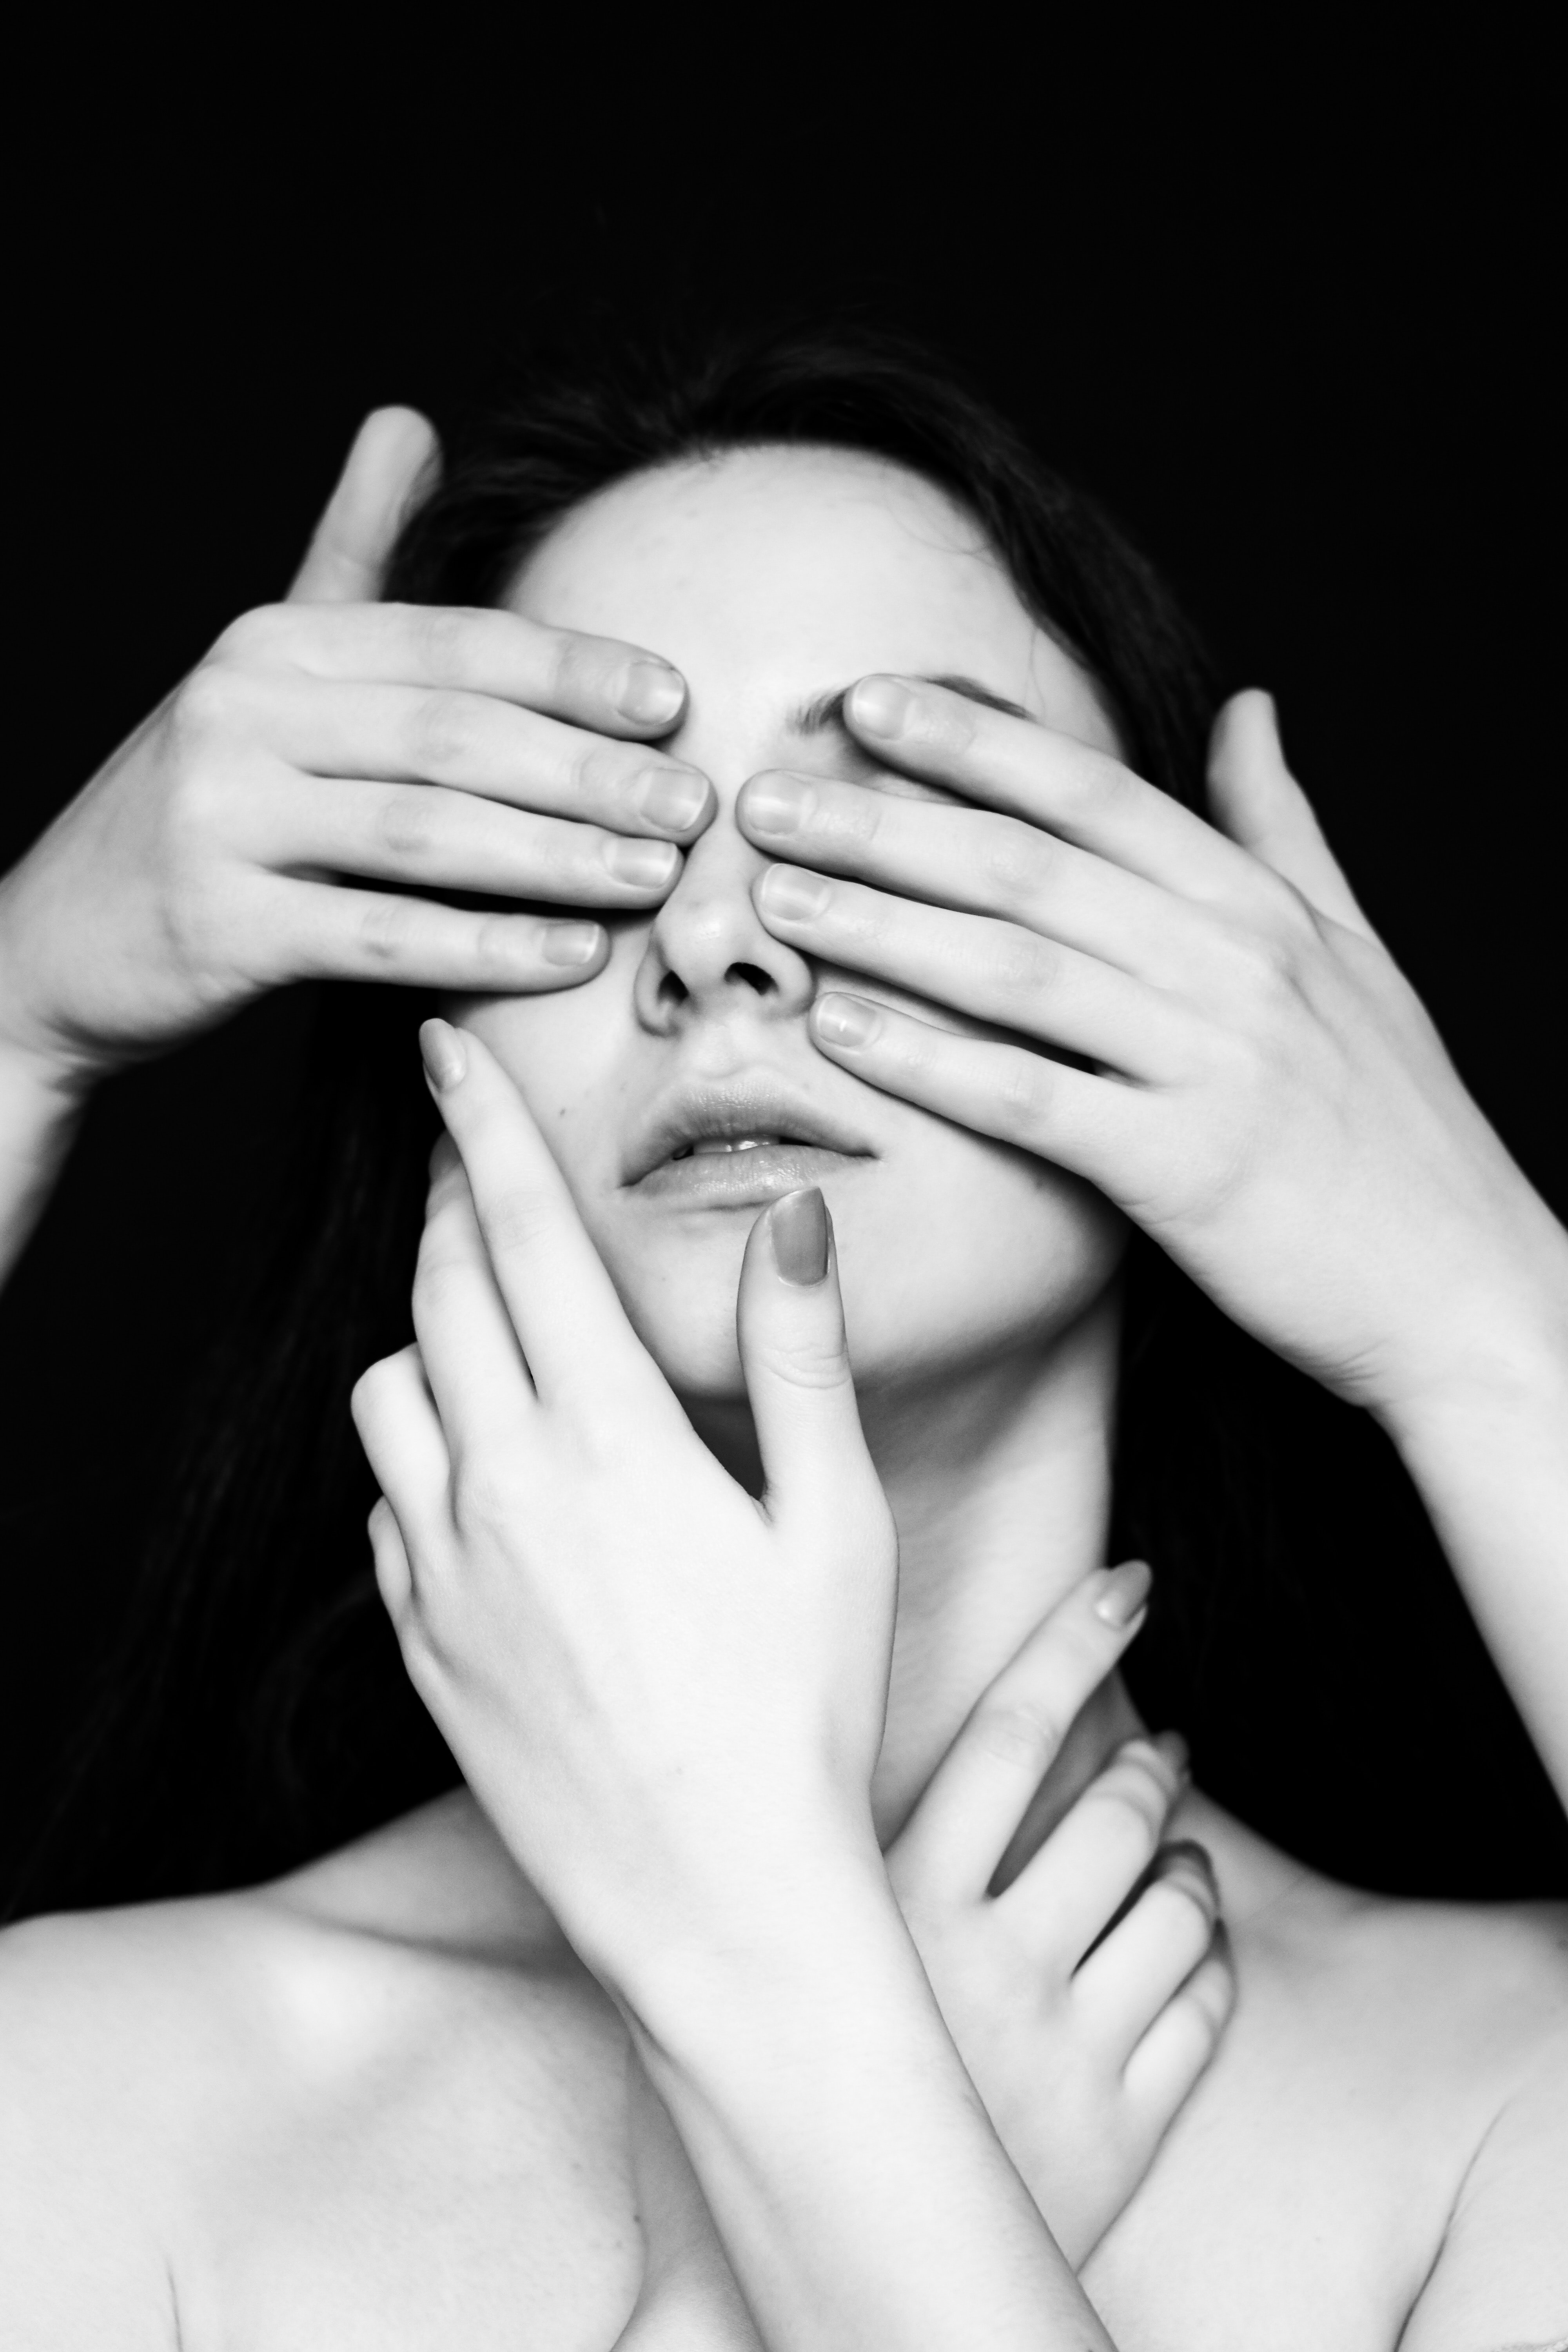 grayscale photography of woman covering eyes with hands